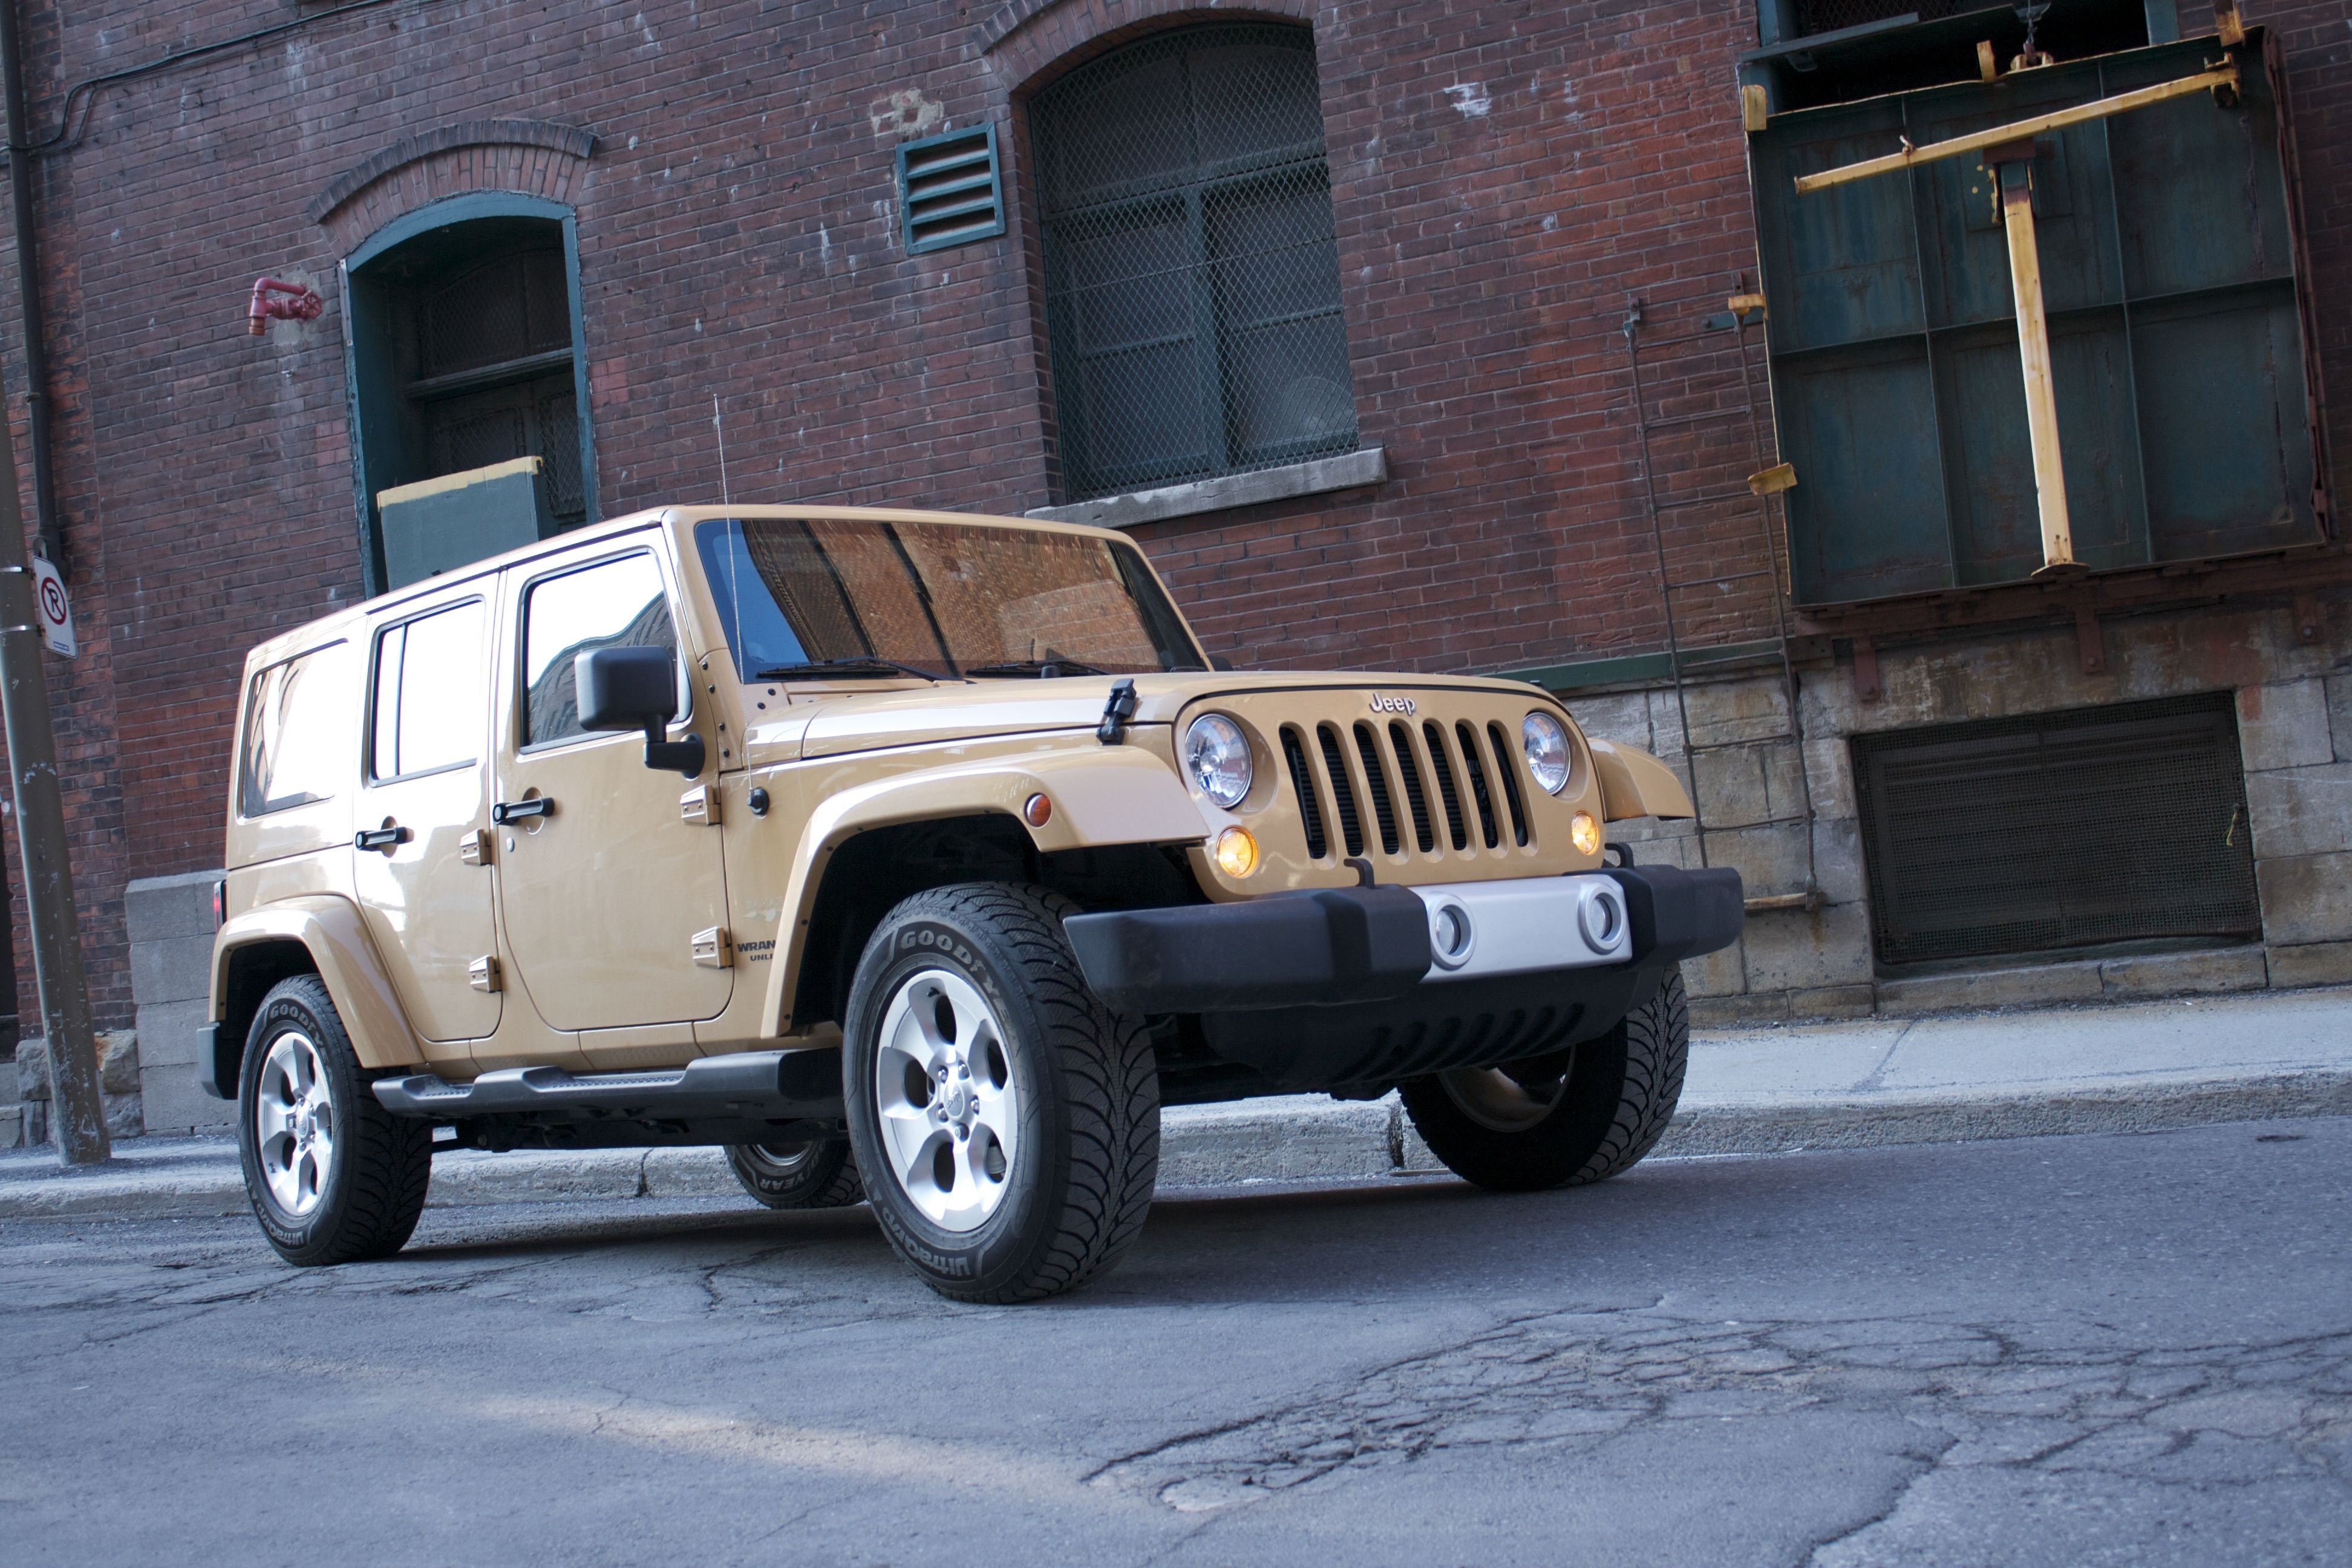 2014 jeep wrangler unlimited sahara 4dr suv 4x4 review trucks and suvs. Black Bedroom Furniture Sets. Home Design Ideas